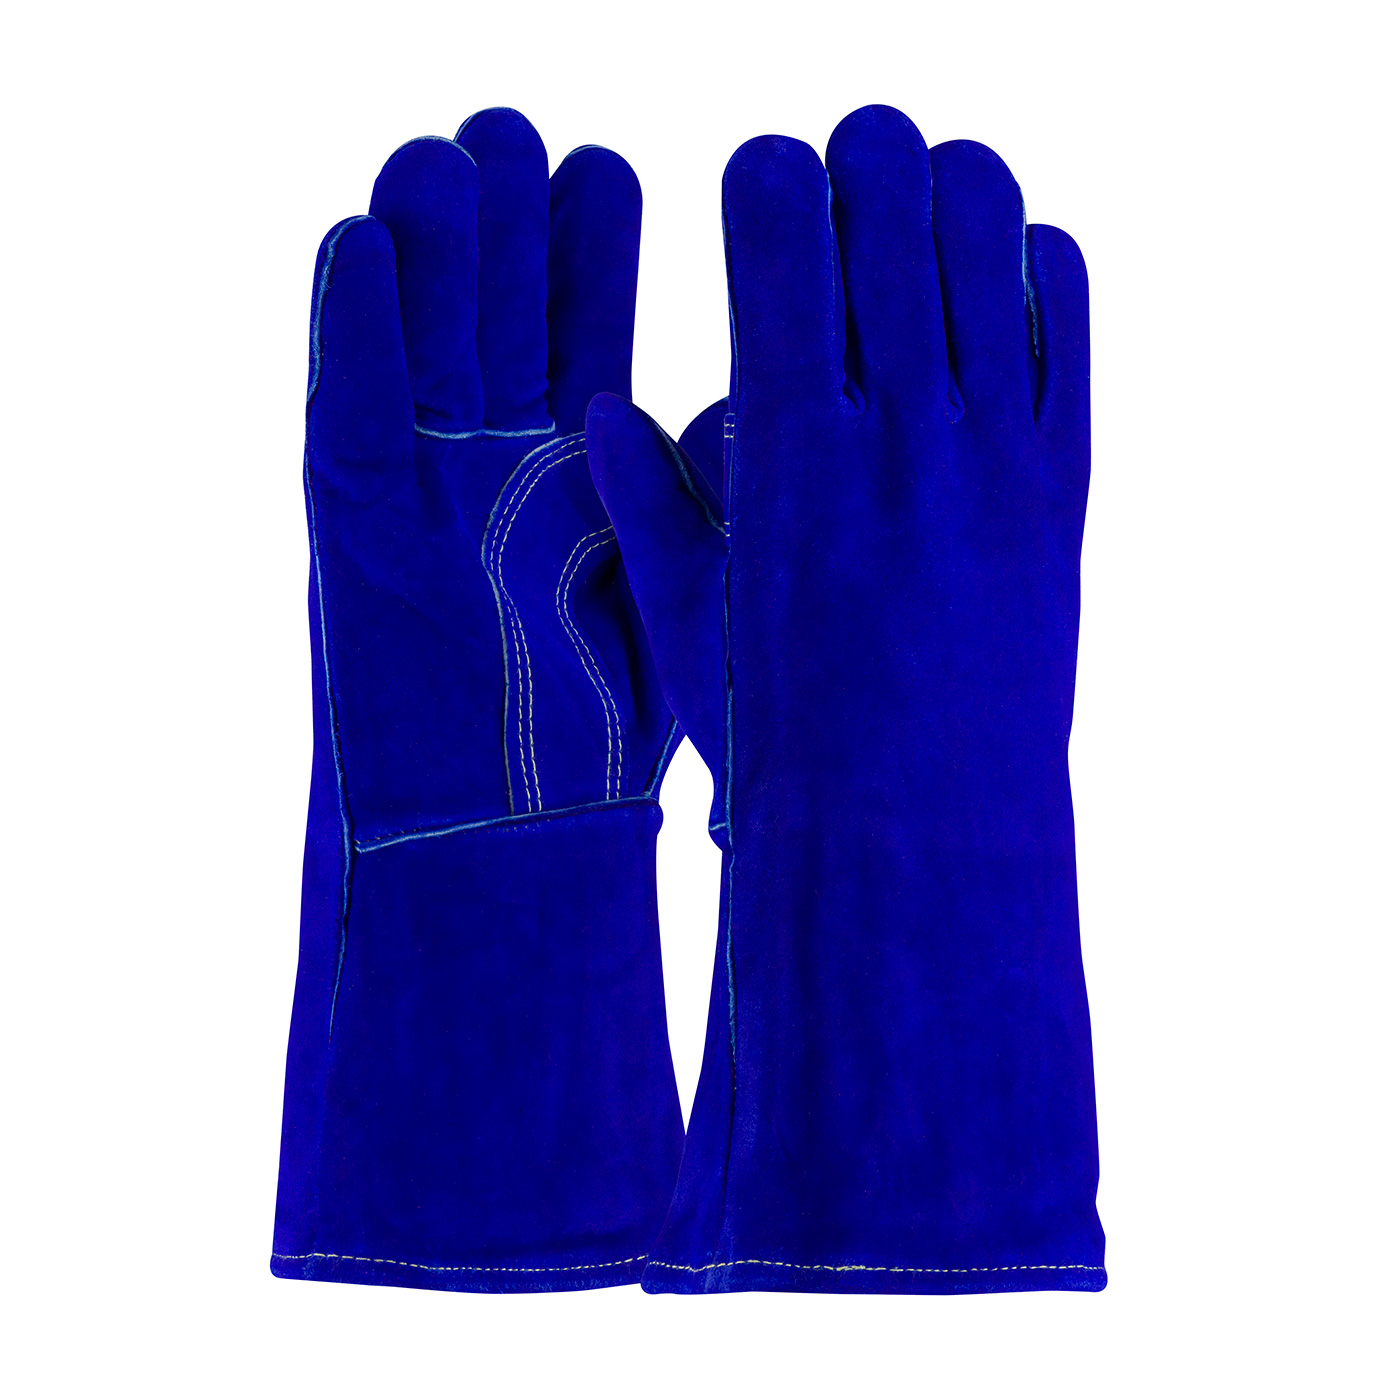 Gloves For Protection From Heat